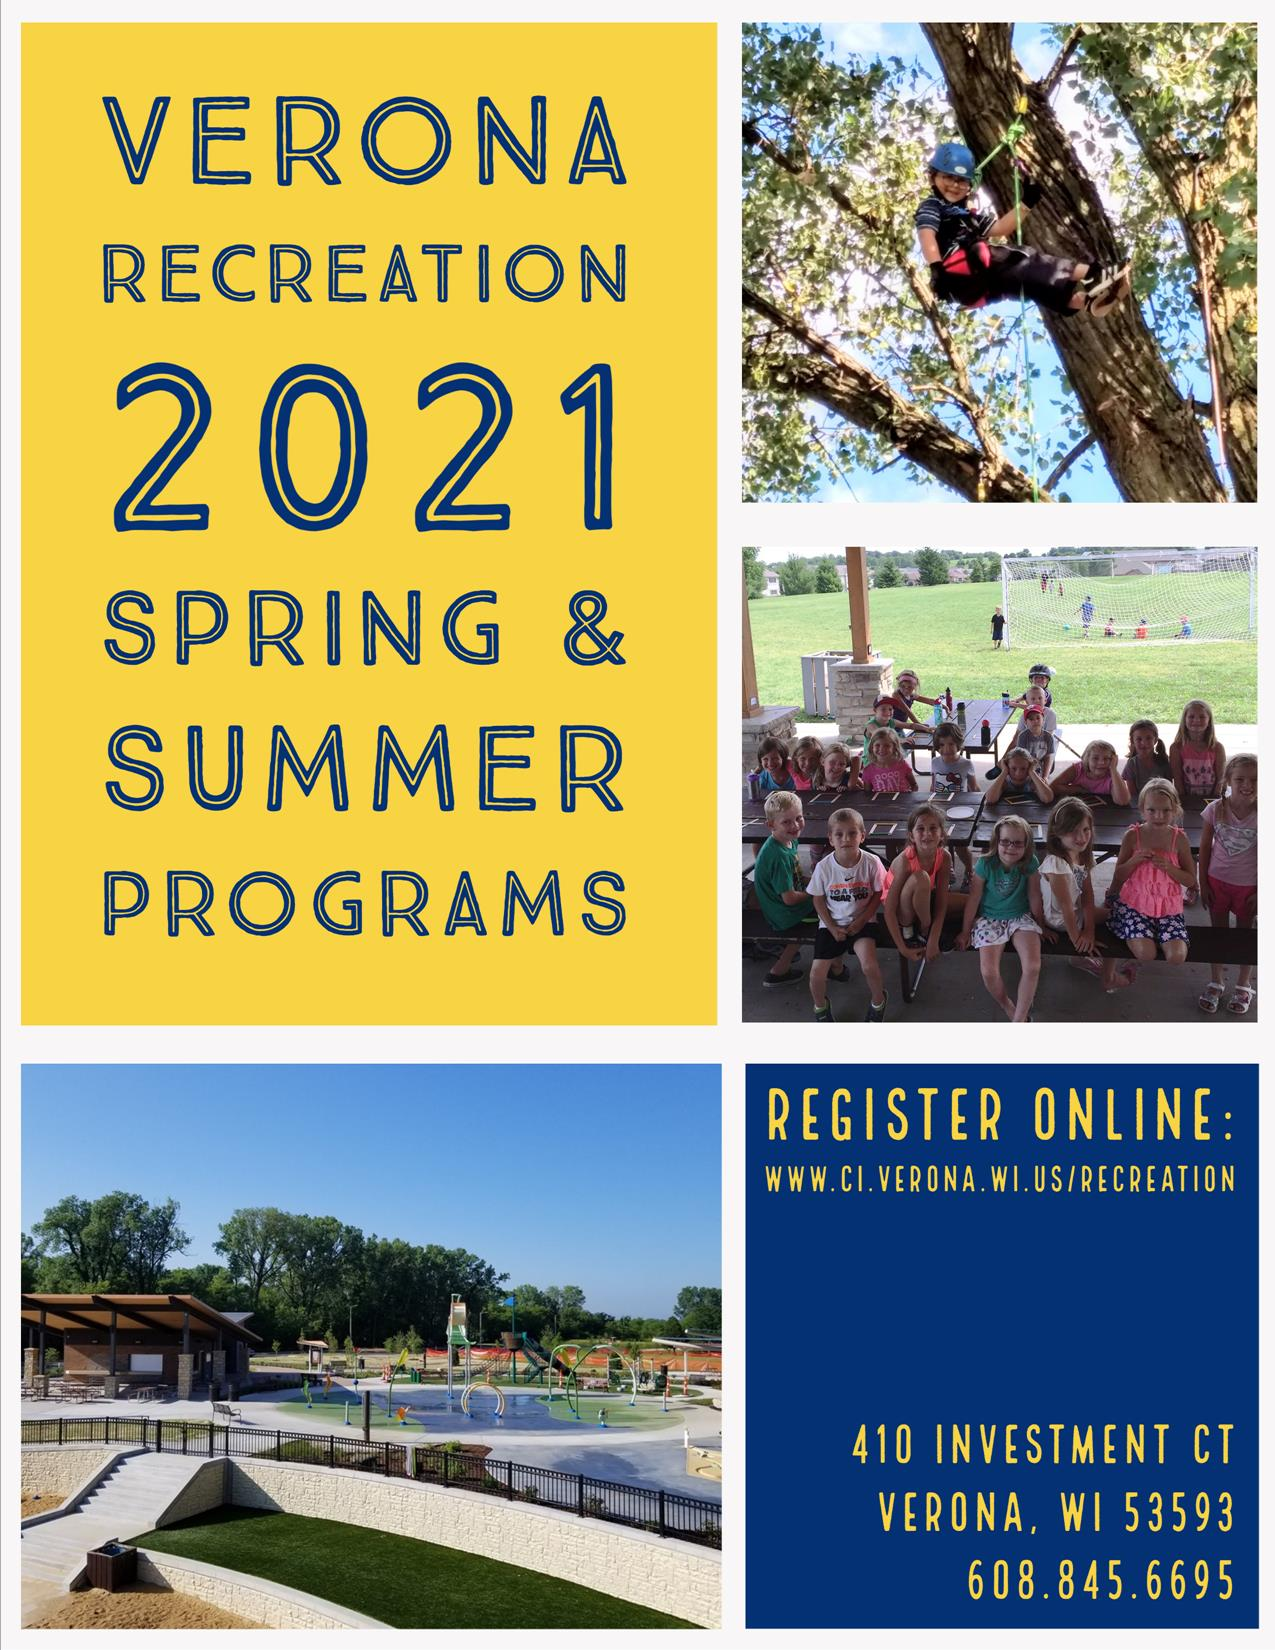 2021 Spring and Summer Program Guide